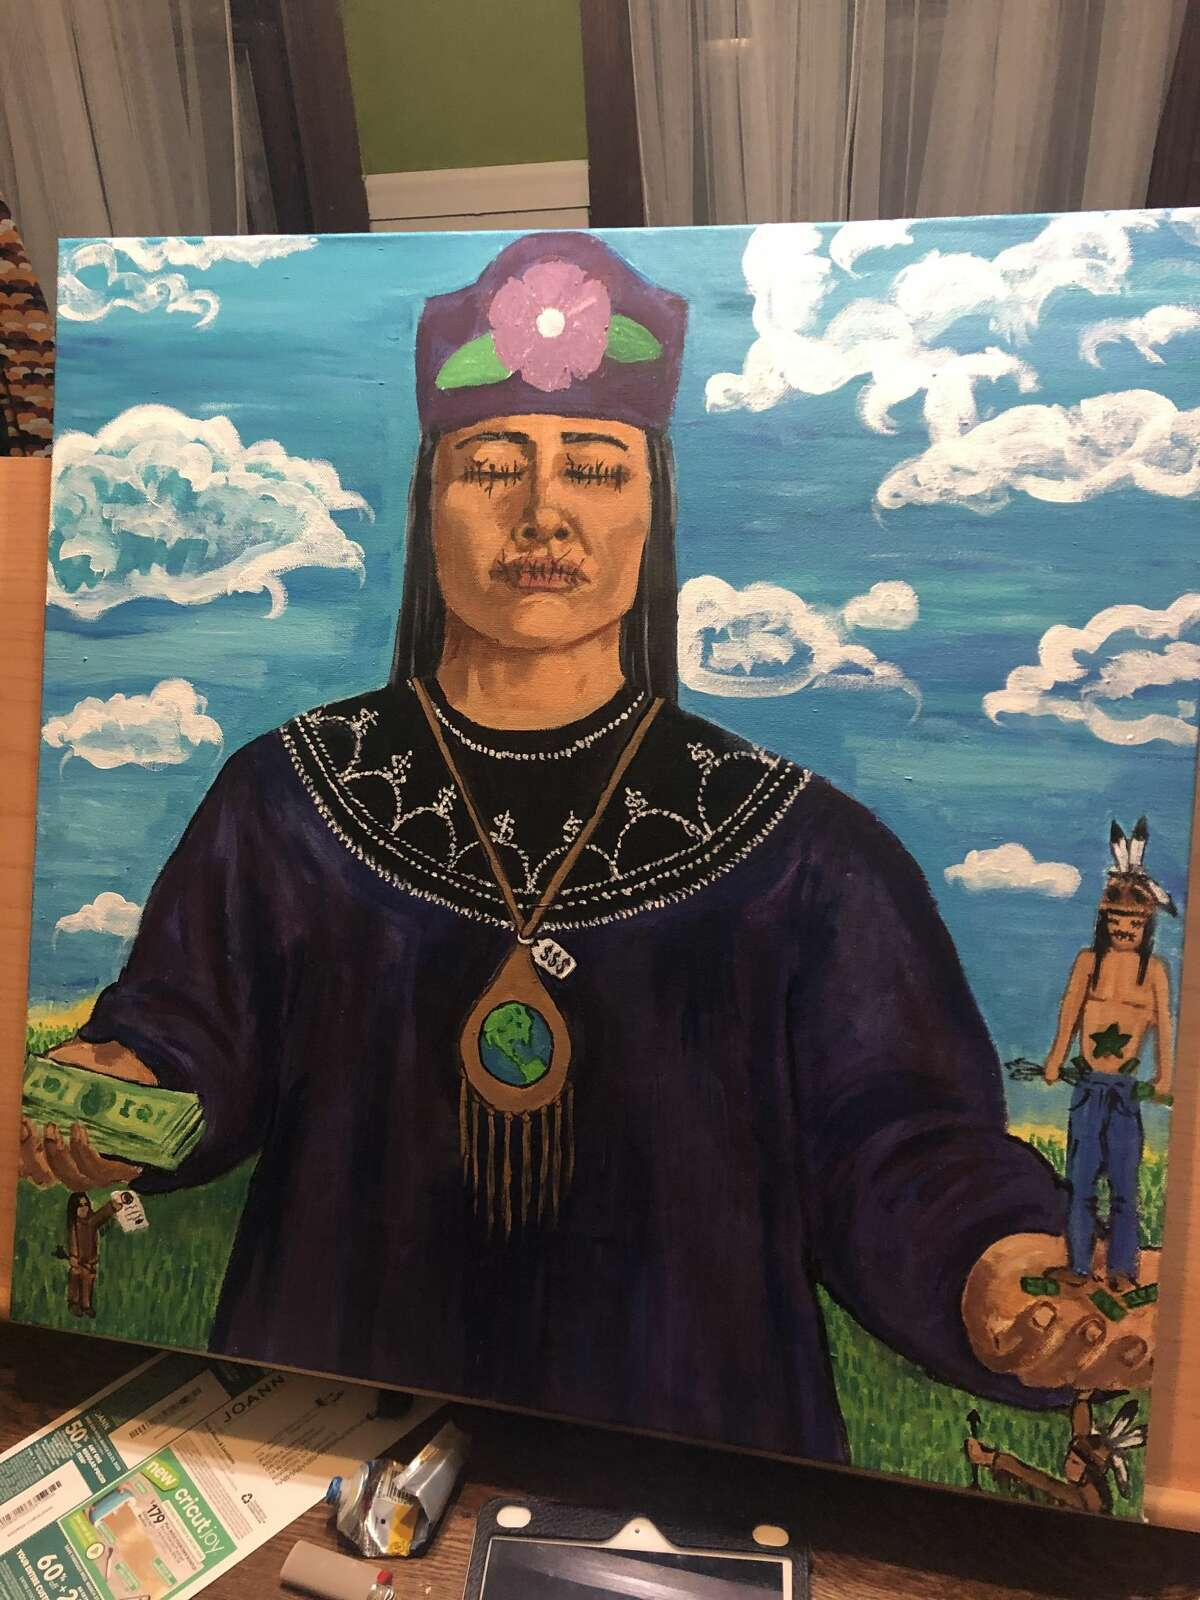 Chrisjohn's painting of a clanmother, depicting how traditions have been shut down because of money.